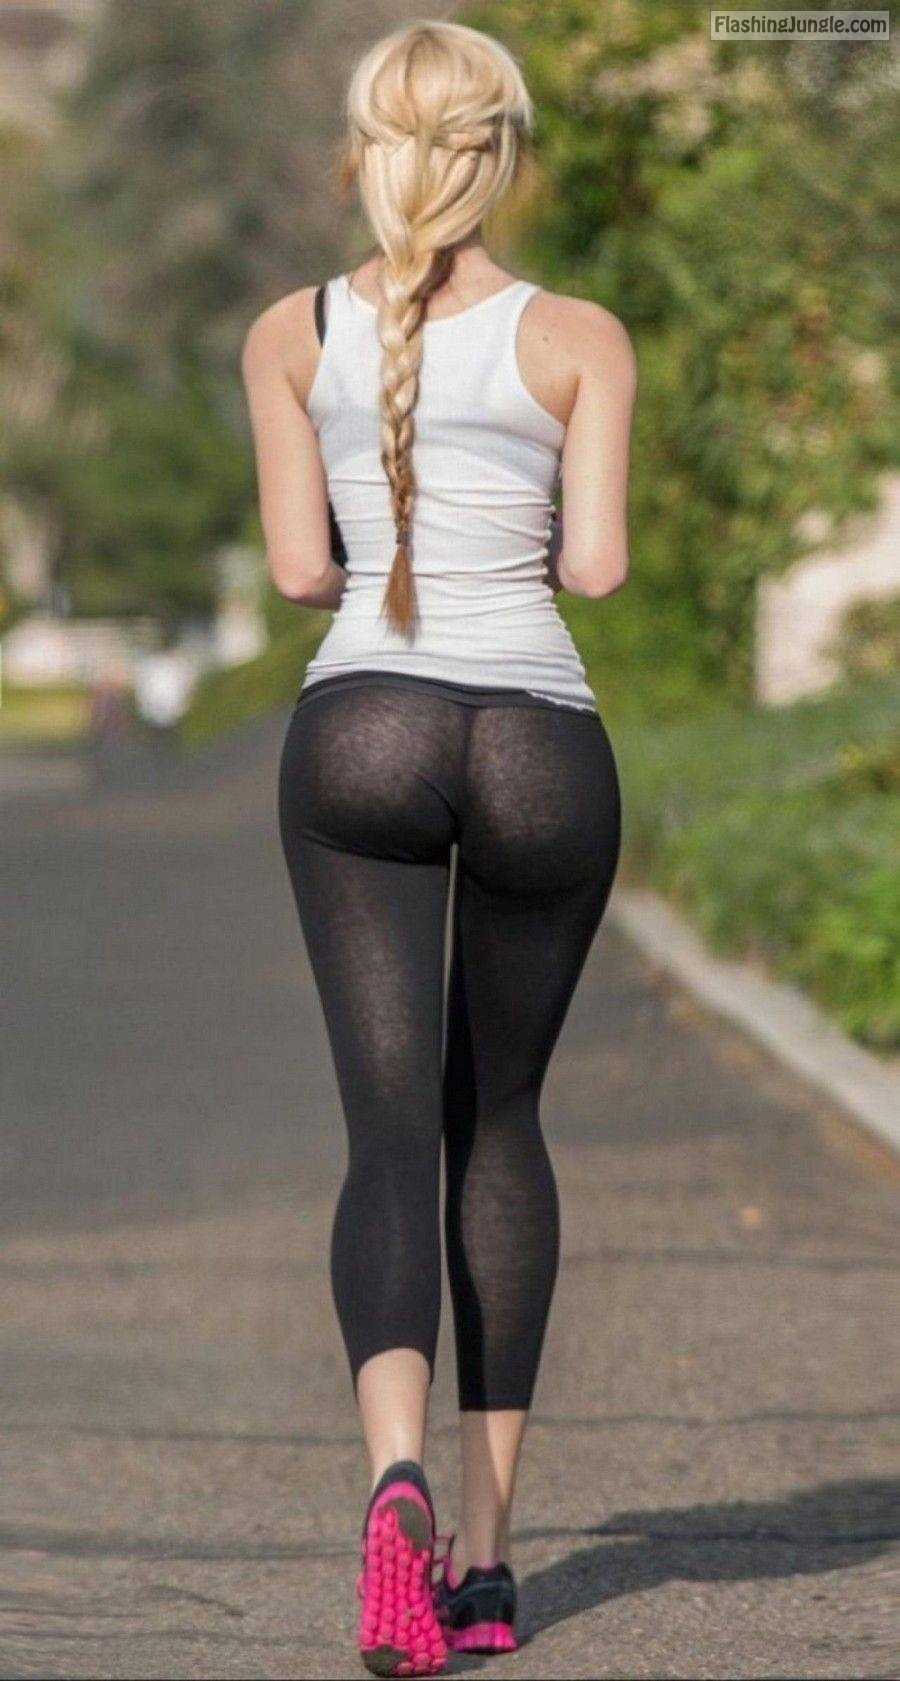 Big Ass Latina Yoga Pants